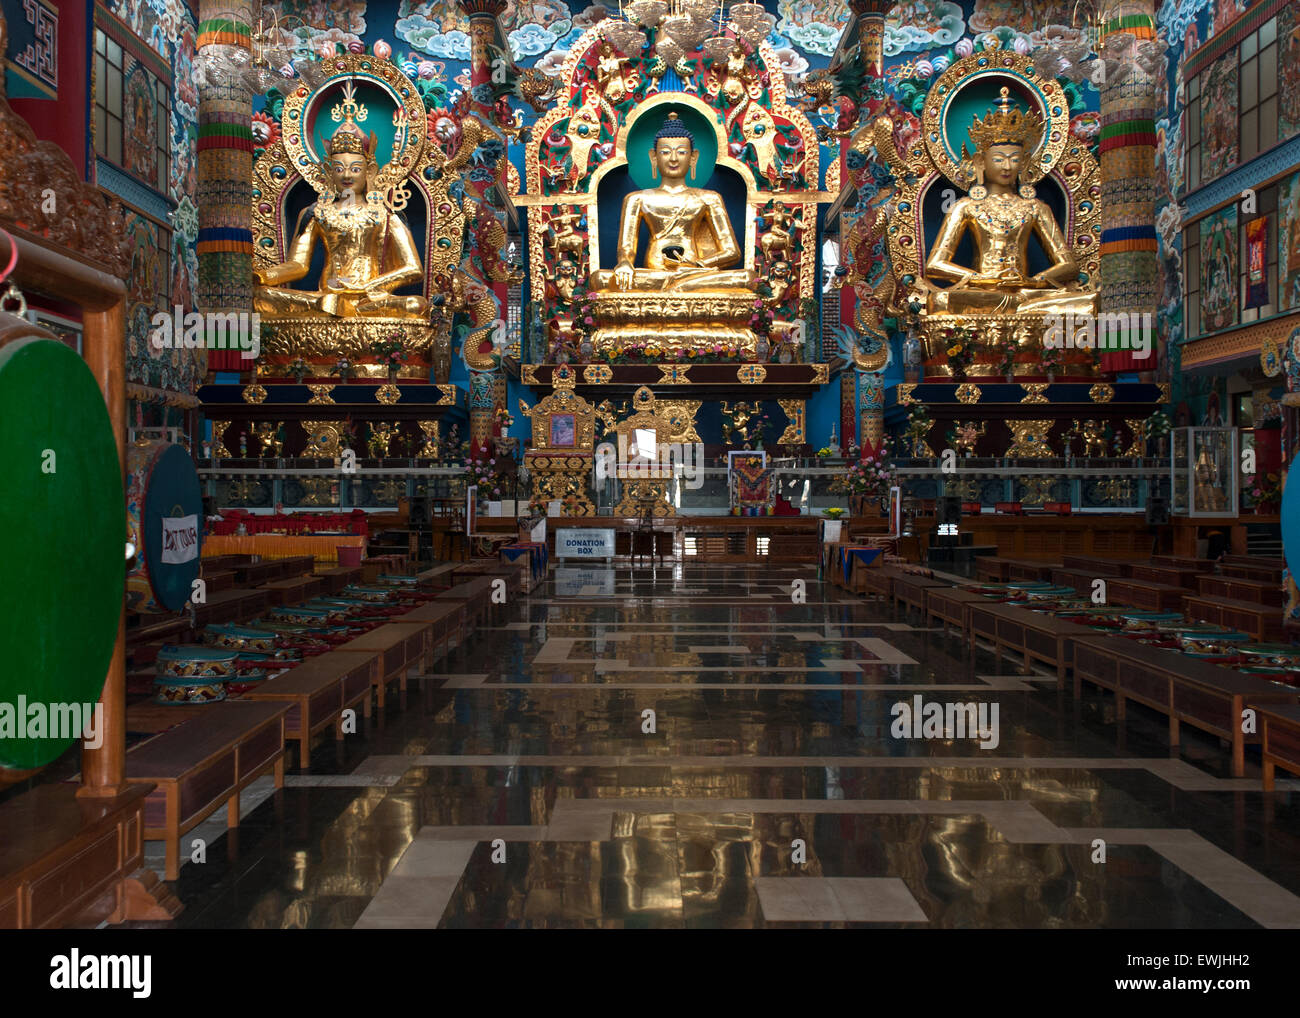 The Golden Temple/Namdroling Monastery is located in a Tibetan refugee resettlement region of South India.  The - Stock Image